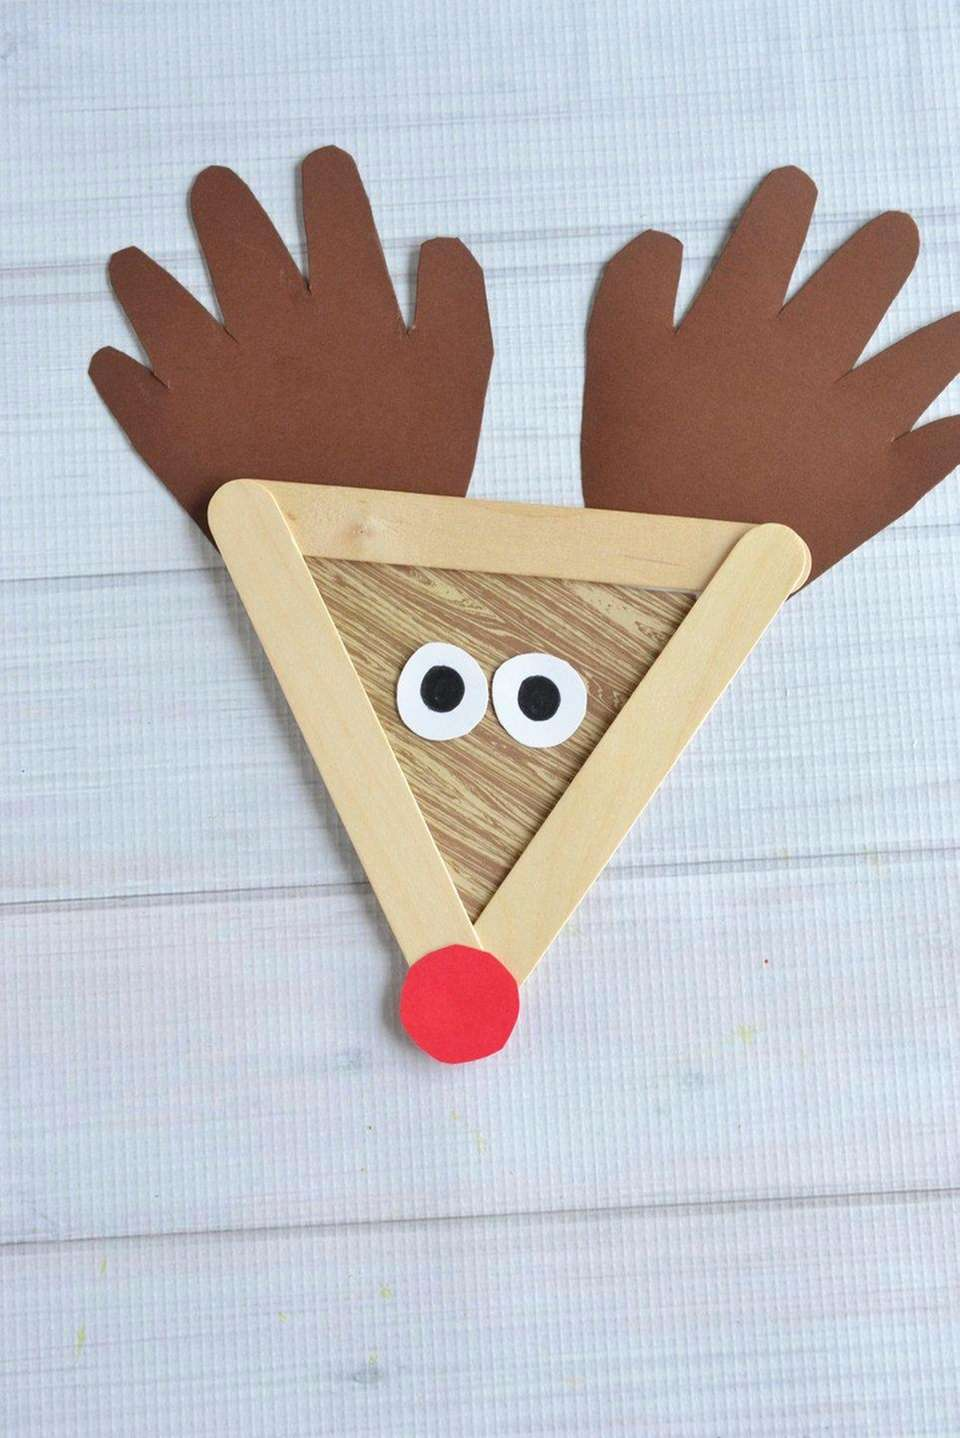 Supplies: -3 Popsicle sticks for each reindeer -Sheets